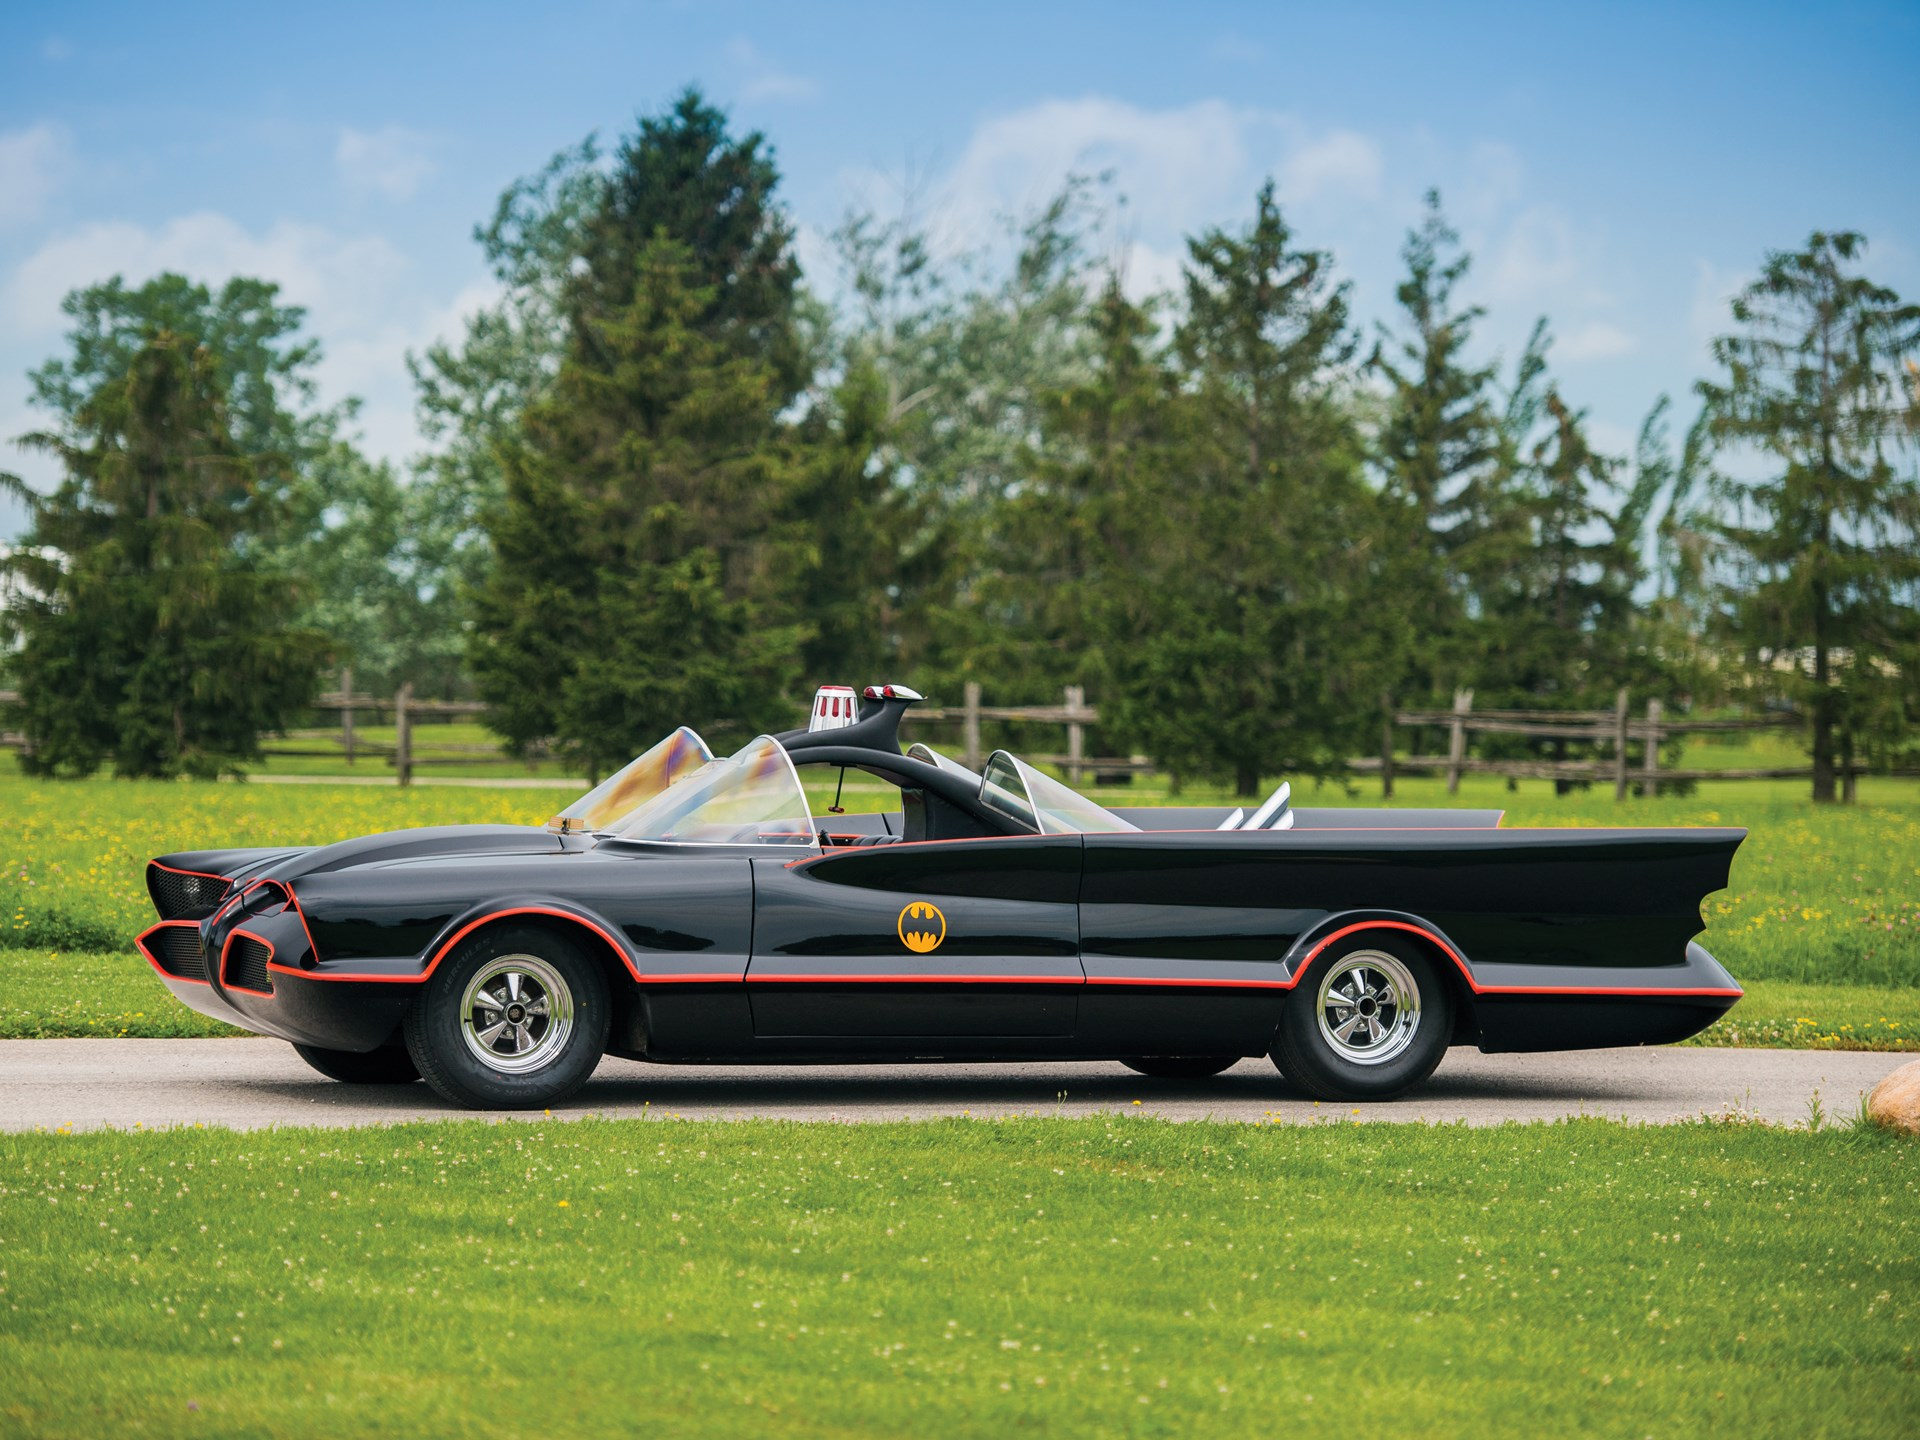 1966 Batmobile Recreation side profile